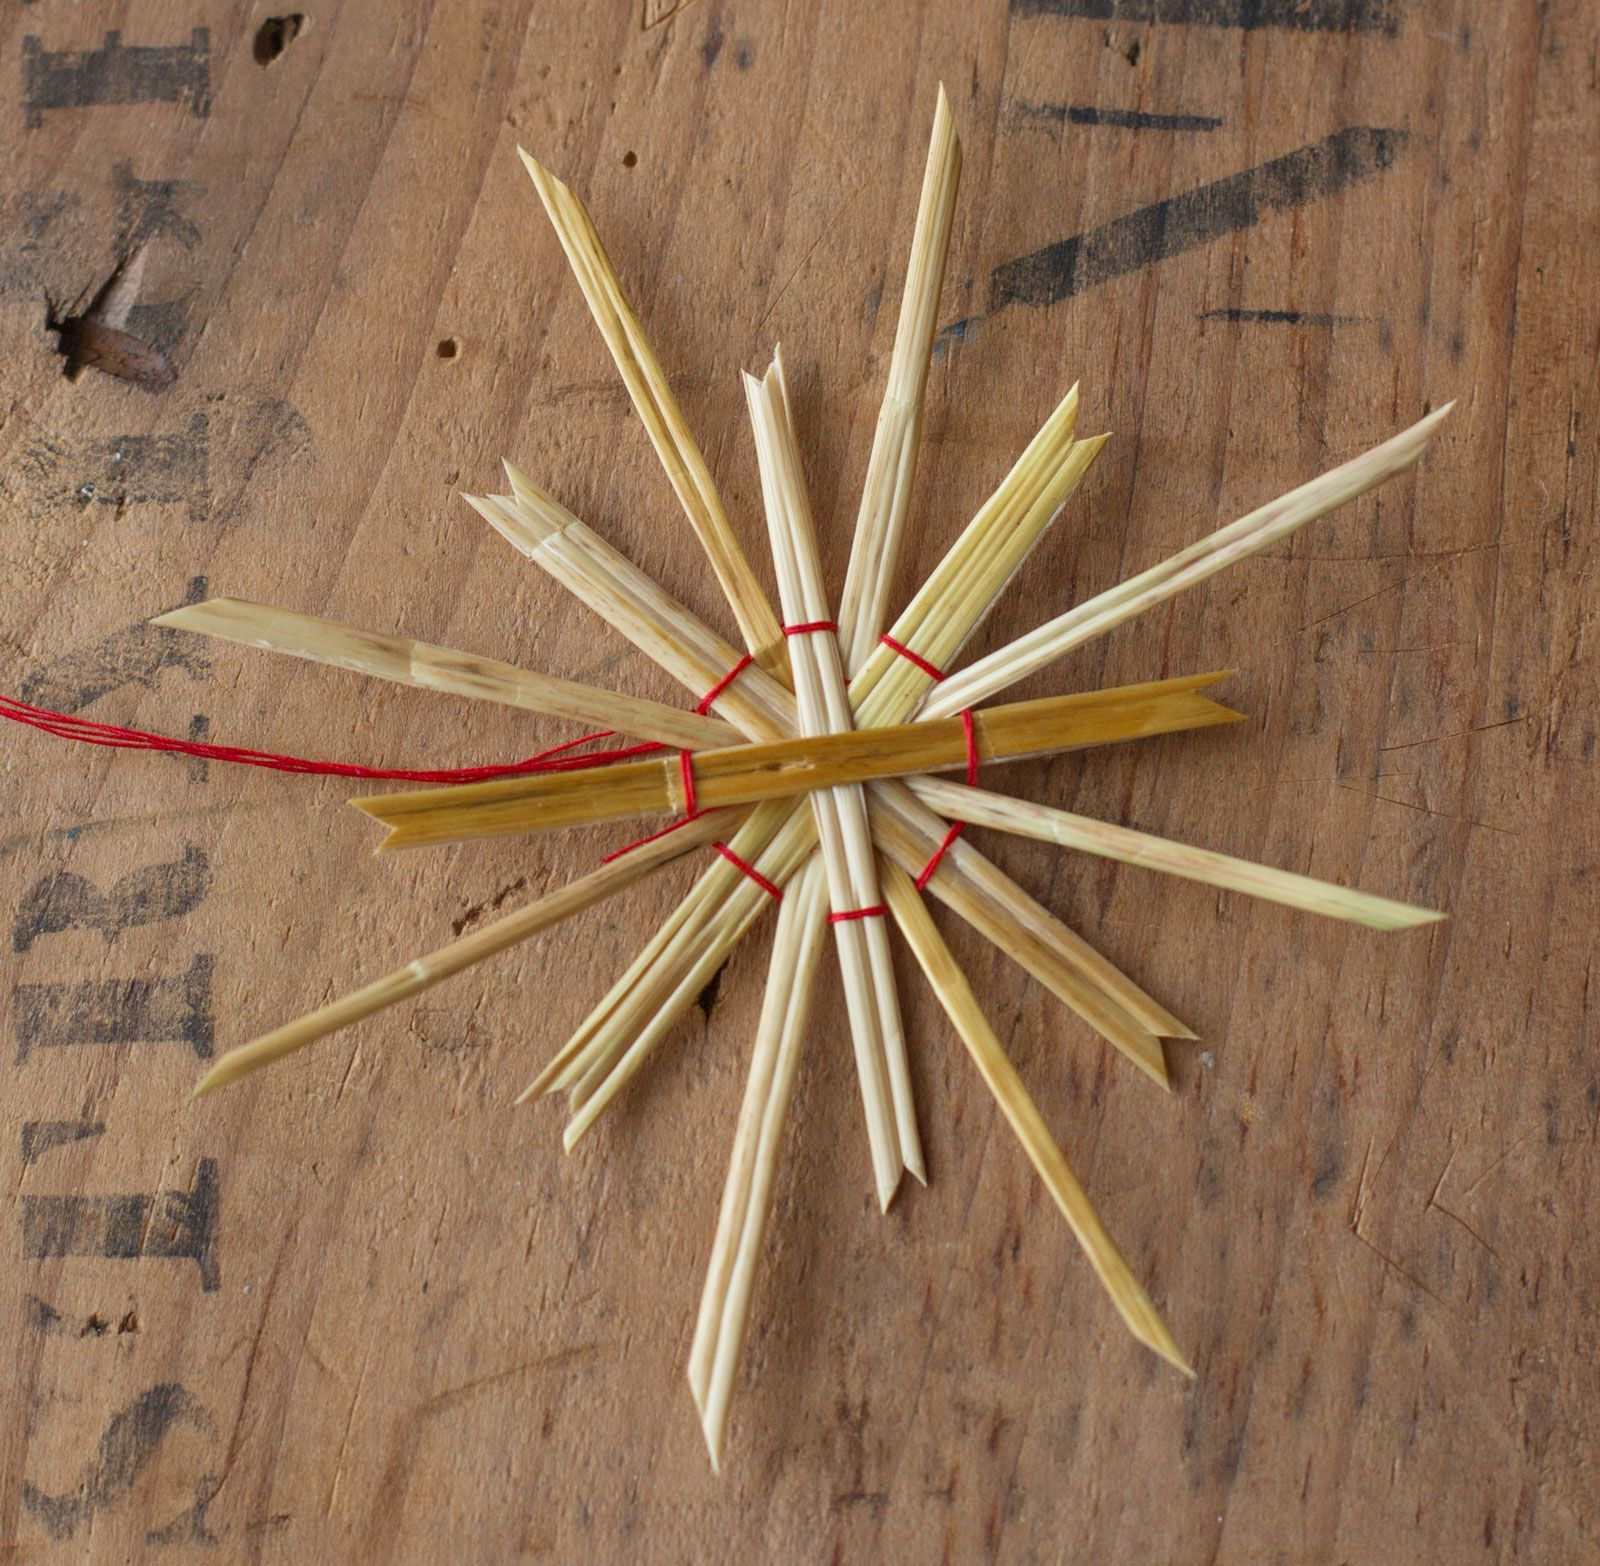 How To Make Straw Star Ornaments Straw Crafts Christmas Ornament Crafts Star Ornament